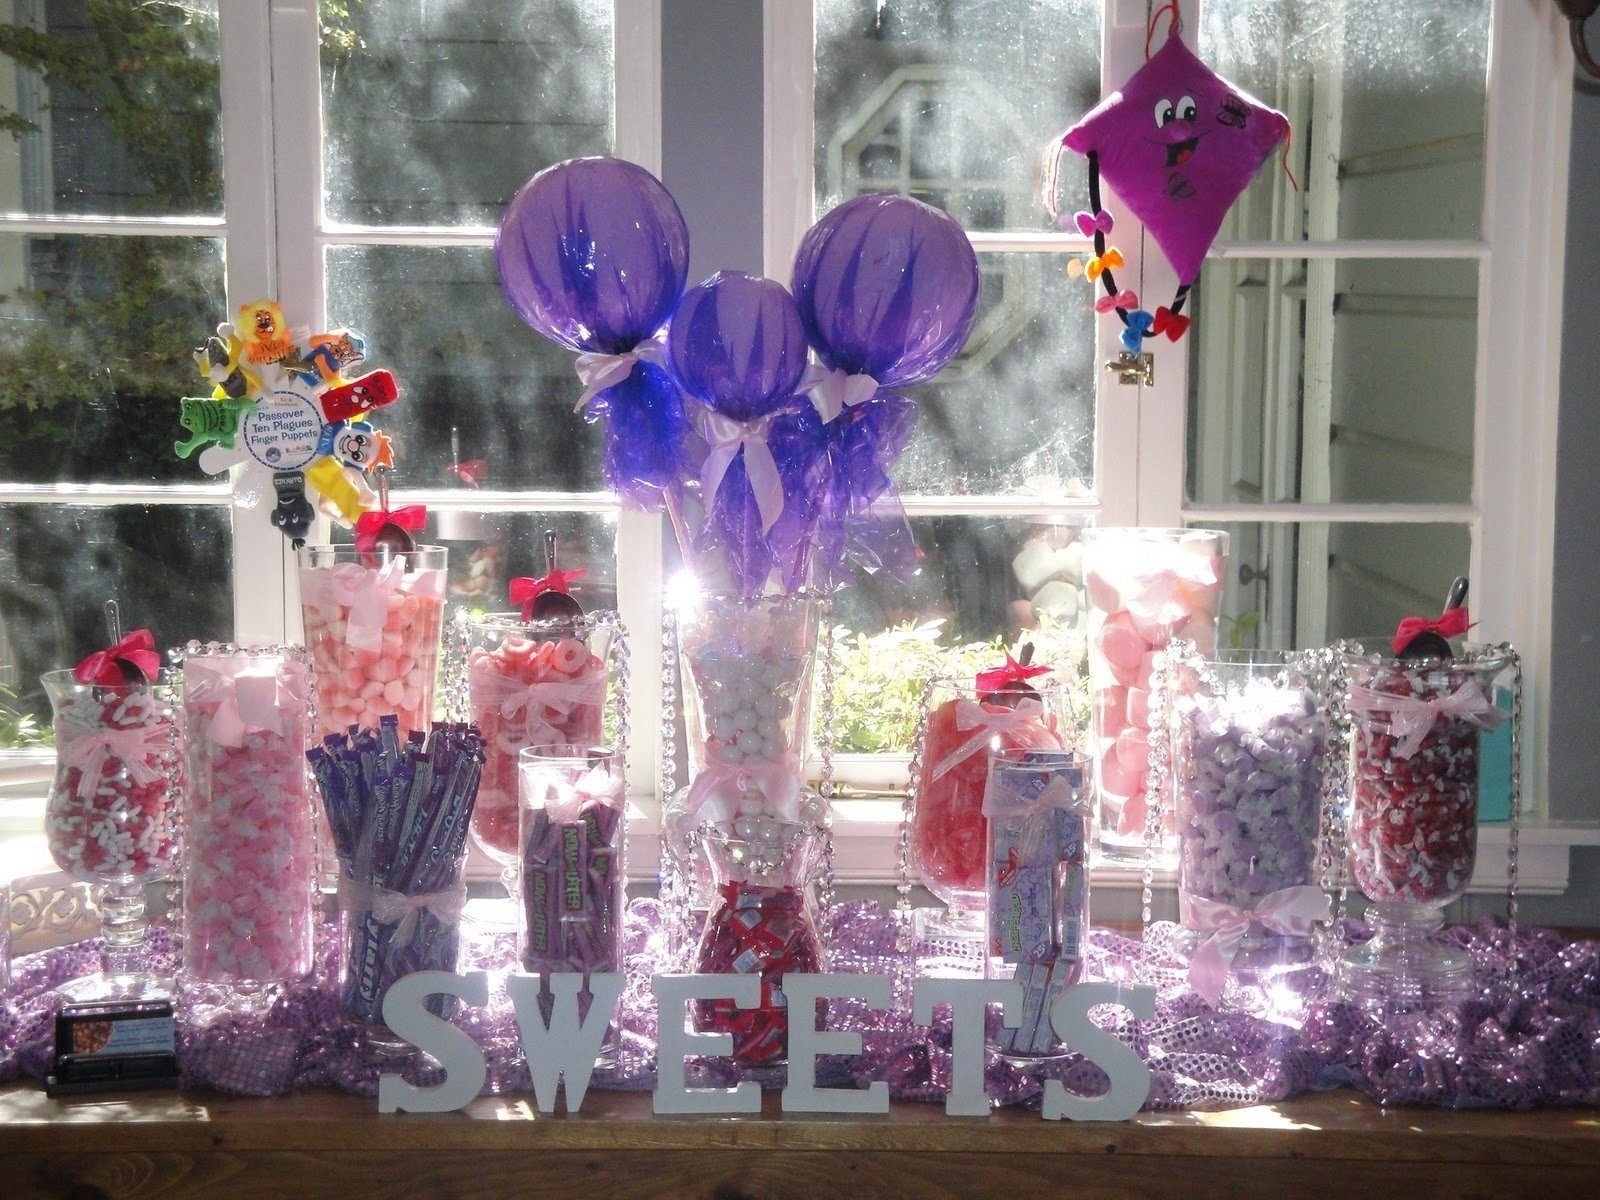 10 Great Ideas For 16Th Birthday Girl themes birthday ideas for a cheap 16th birthday party as well as 8 2021